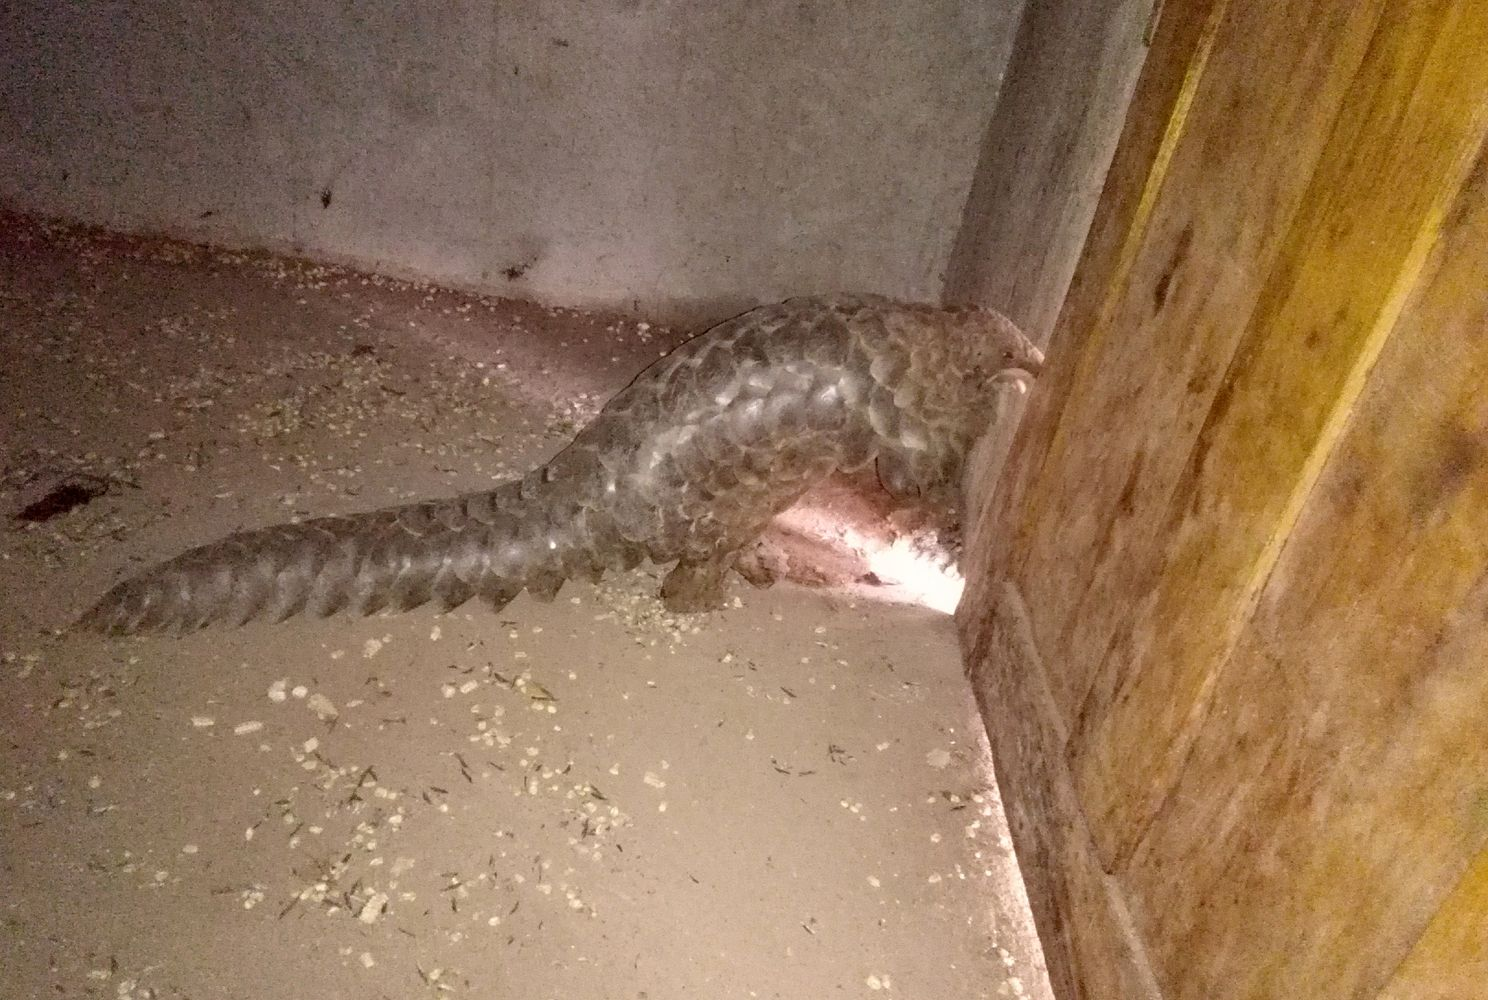 A pangolin who was held captive in a storage shed